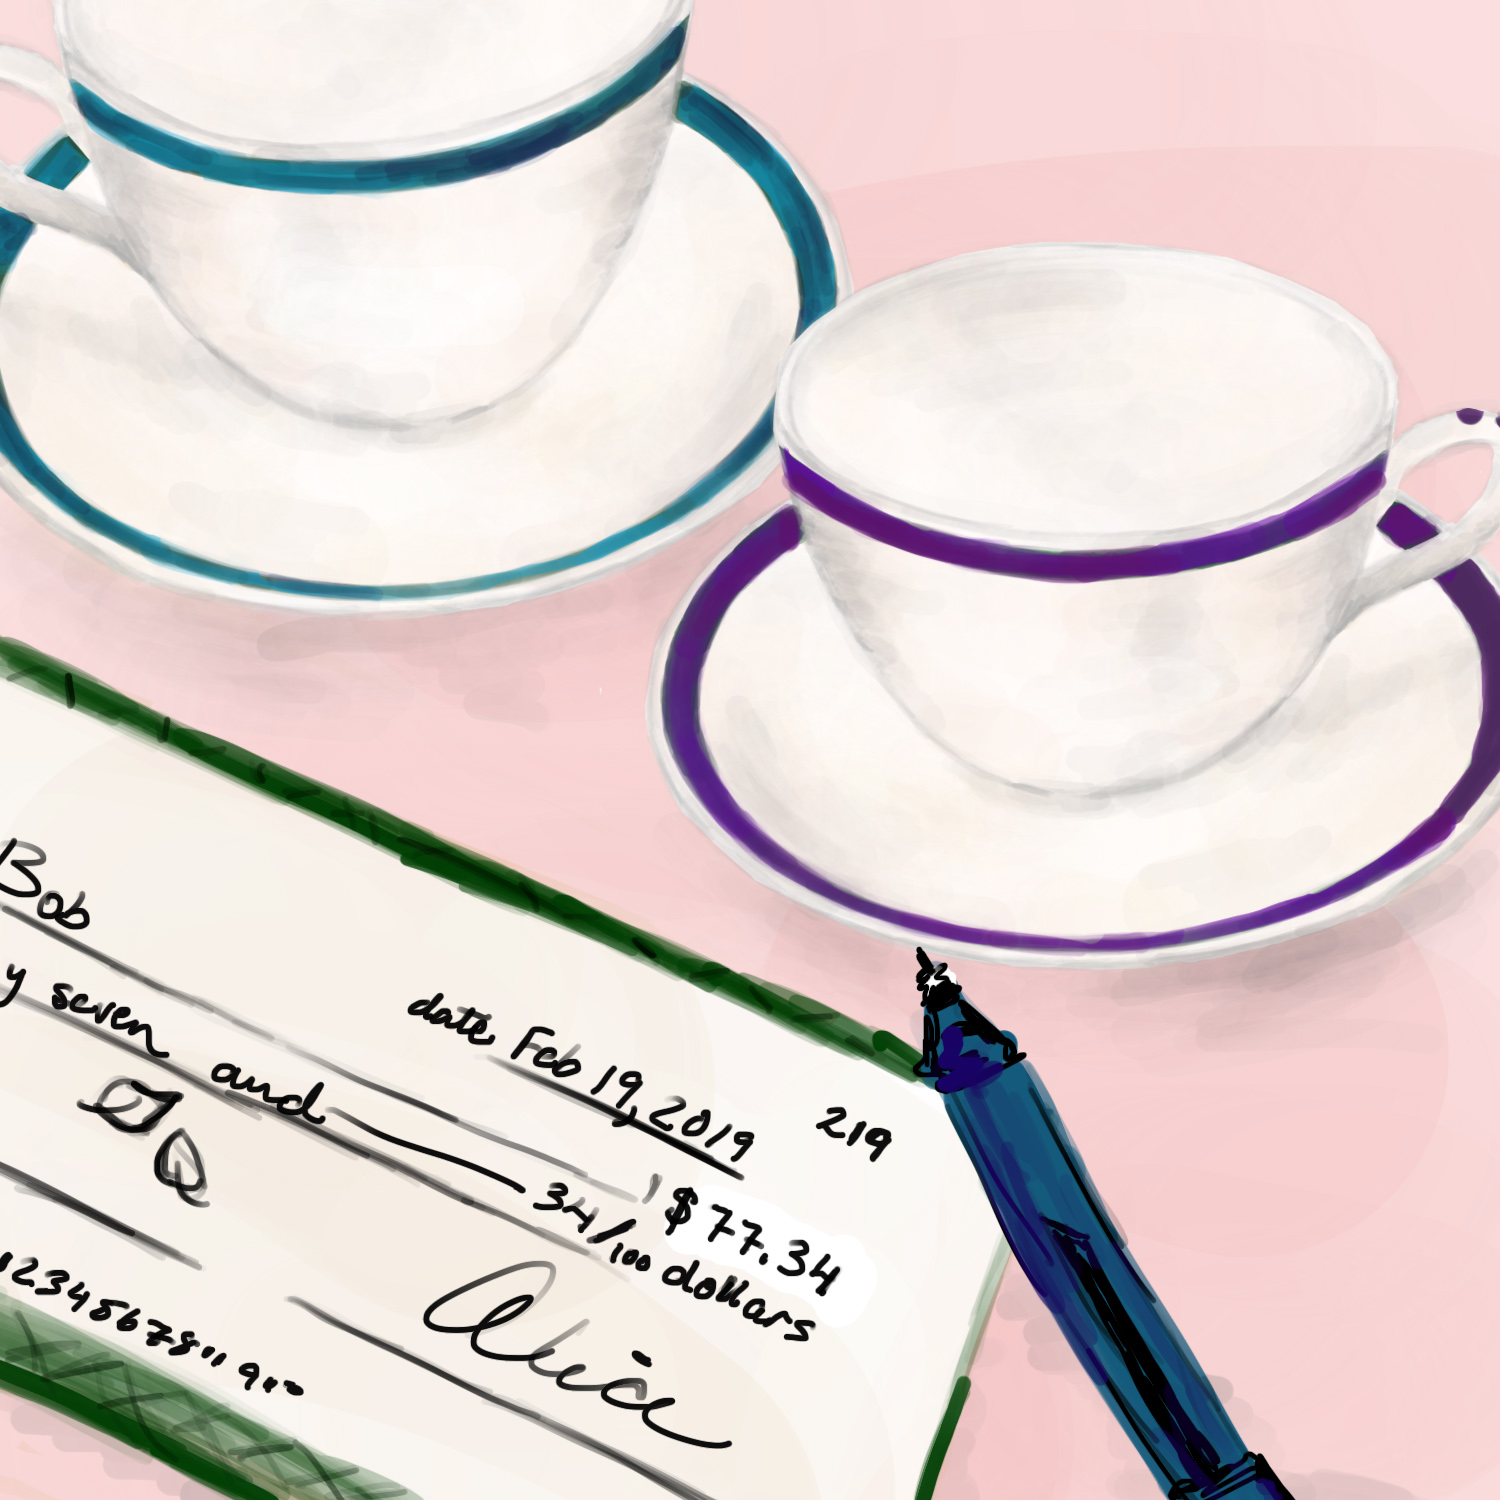 Two teacups near a check that has just been filled out